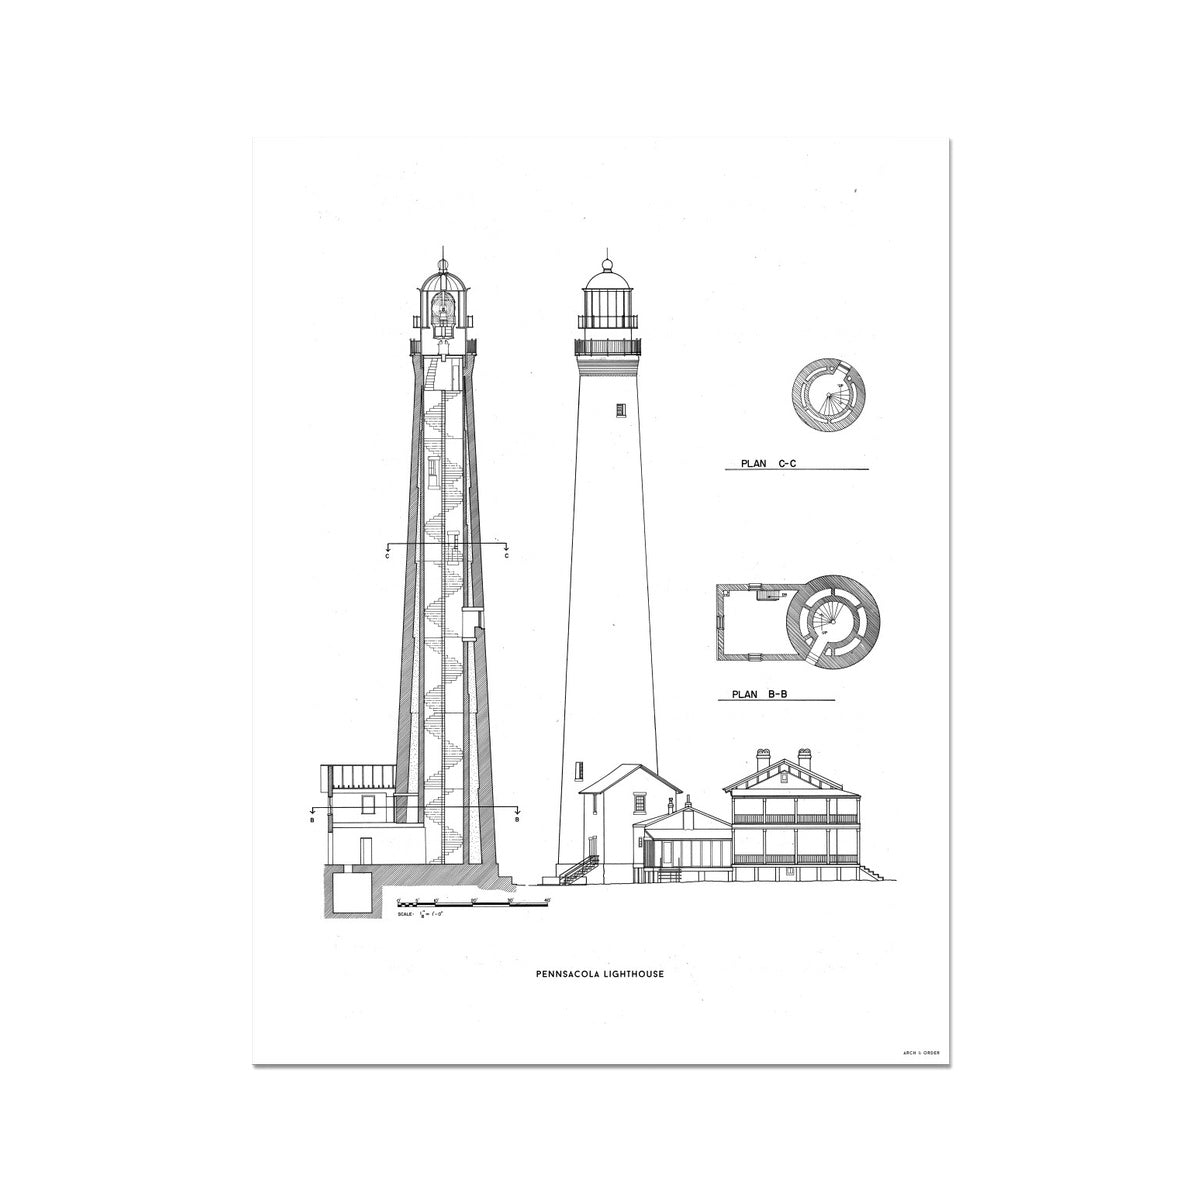 The Pensacola Lighthouse - West Elevation and Cross Section - White - German Etching Print